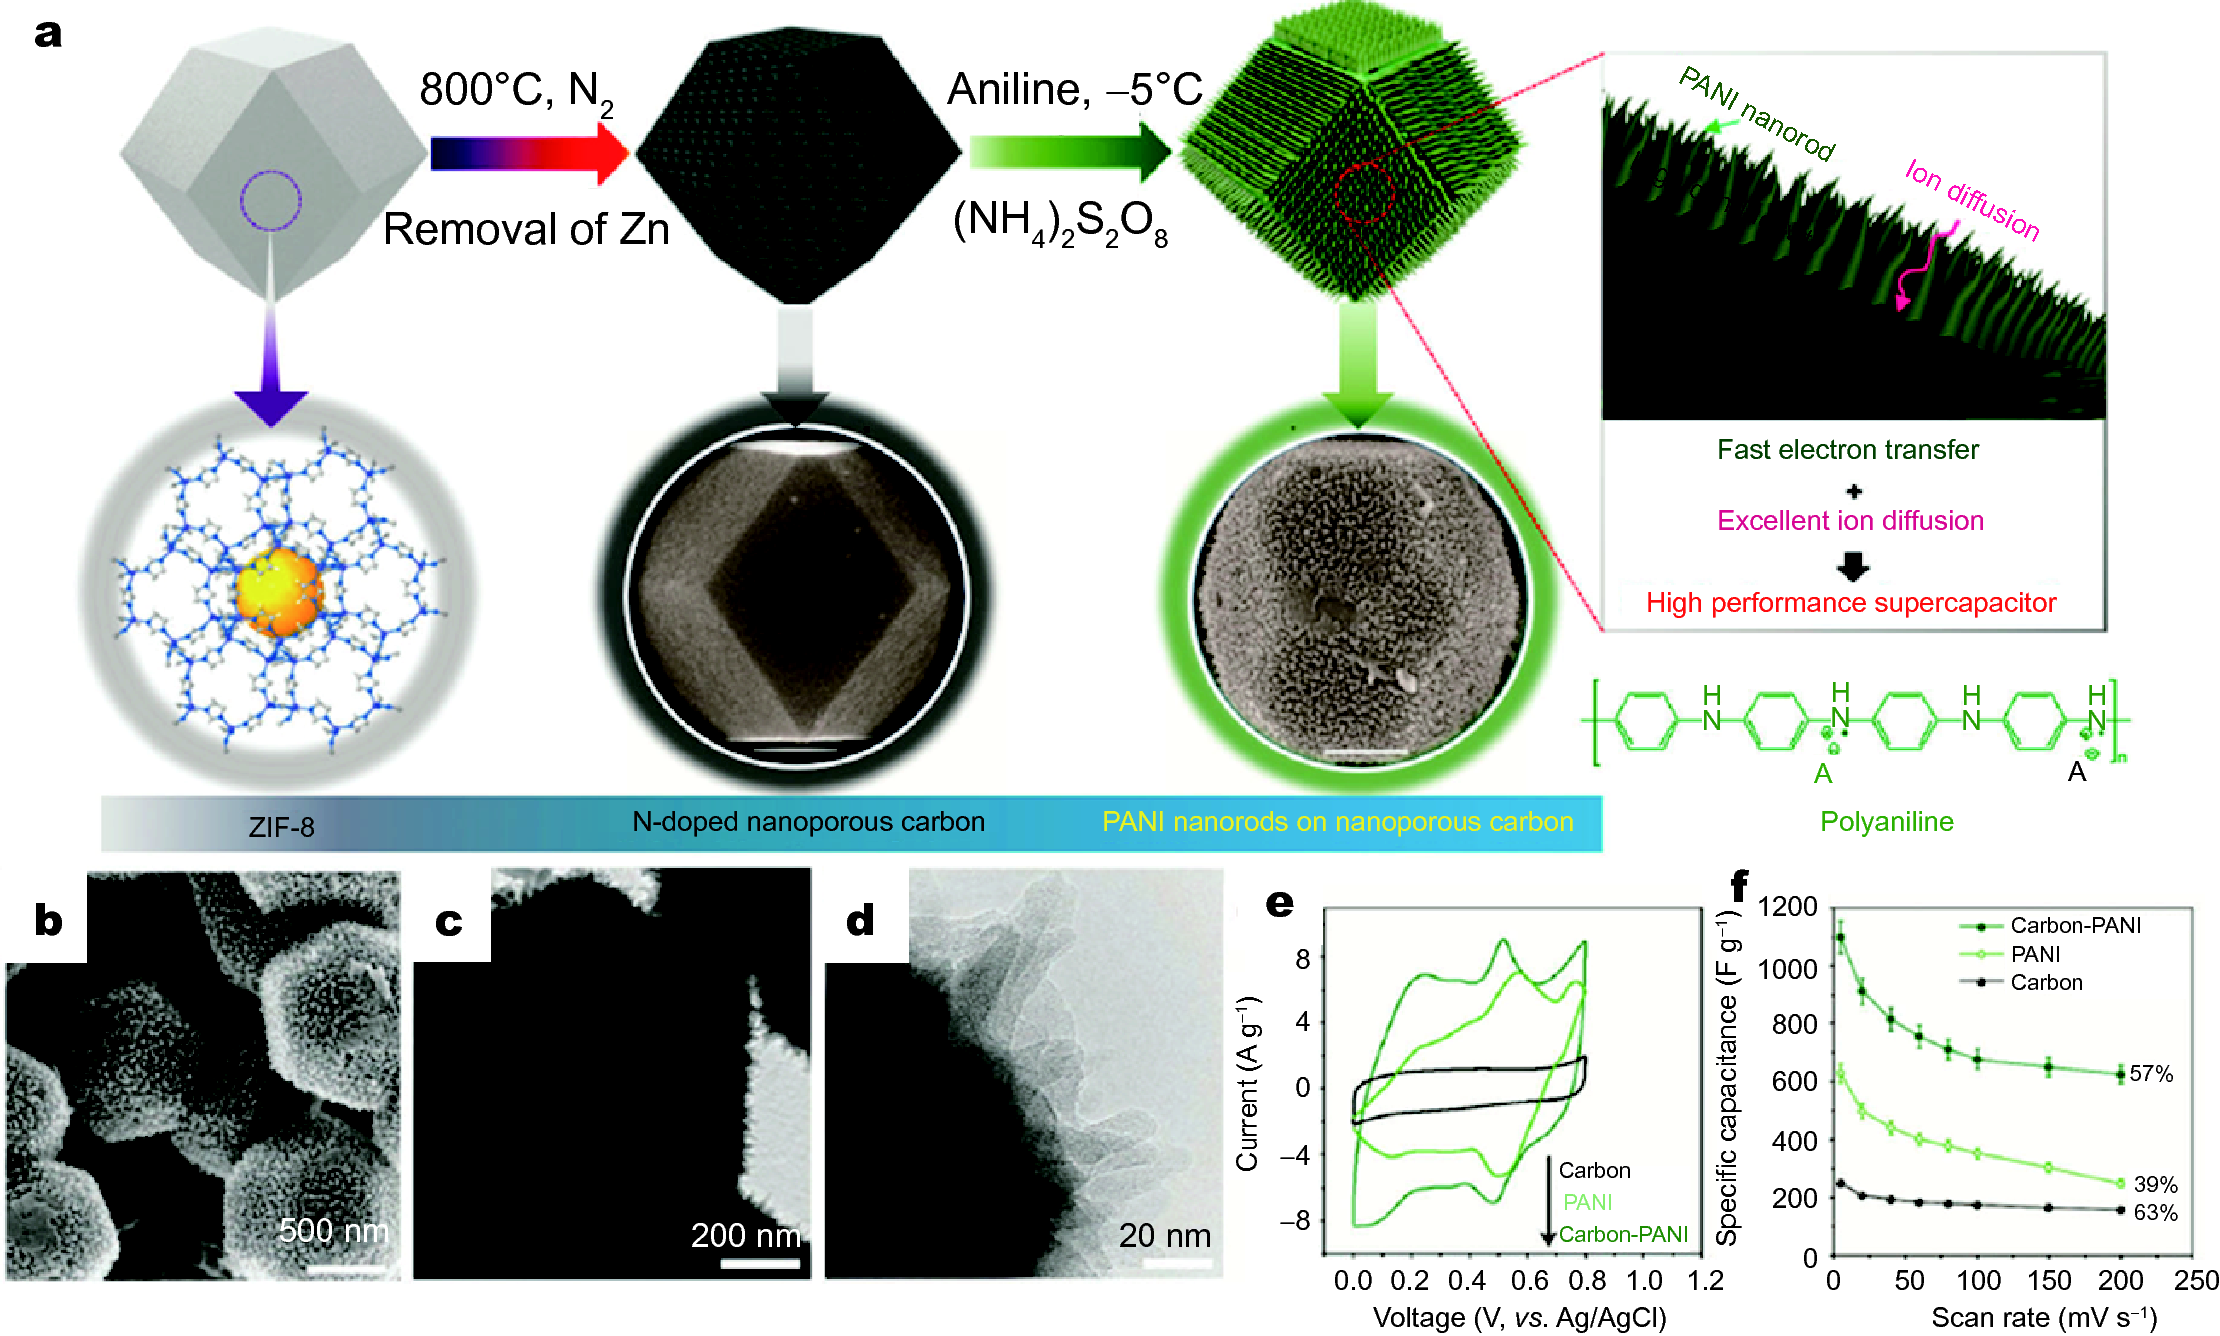 Recent progress on nanostructured conducting polymers and composites